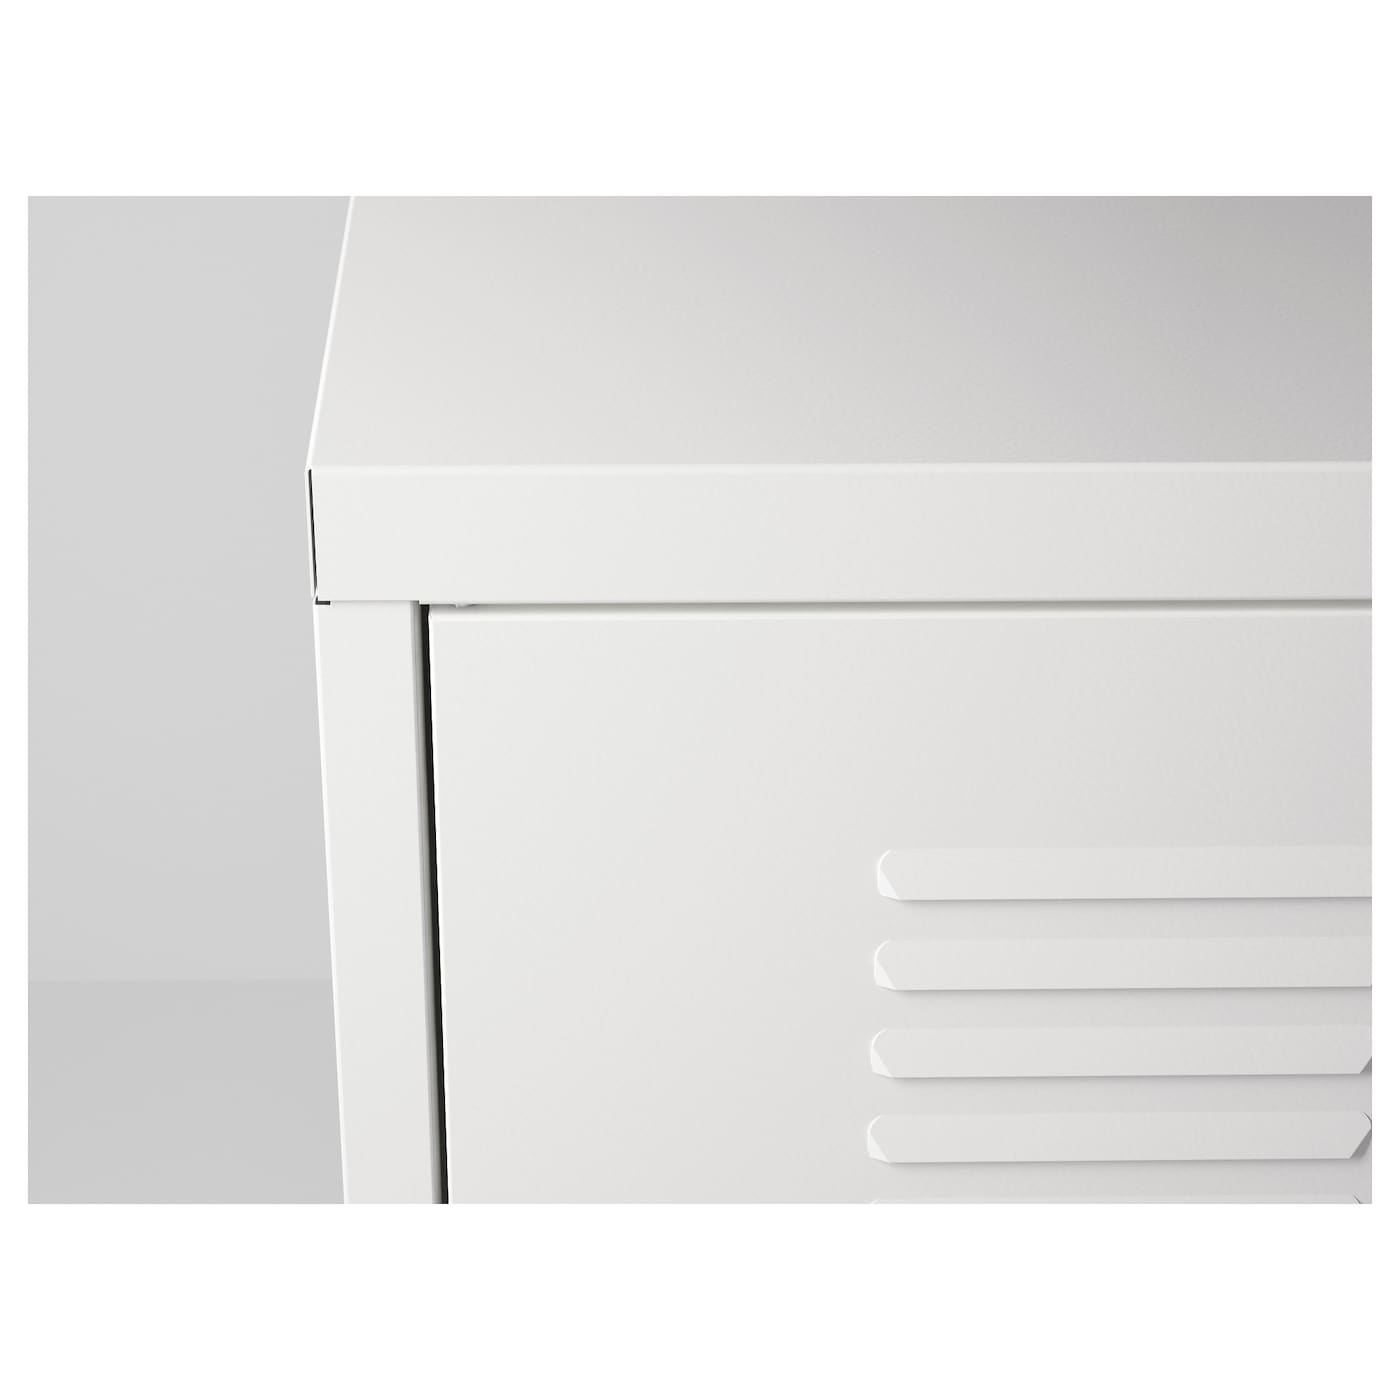 Ikea Ps Cabinet A Cord Outlet Underneath Makes It Easy To Gather All Cords In